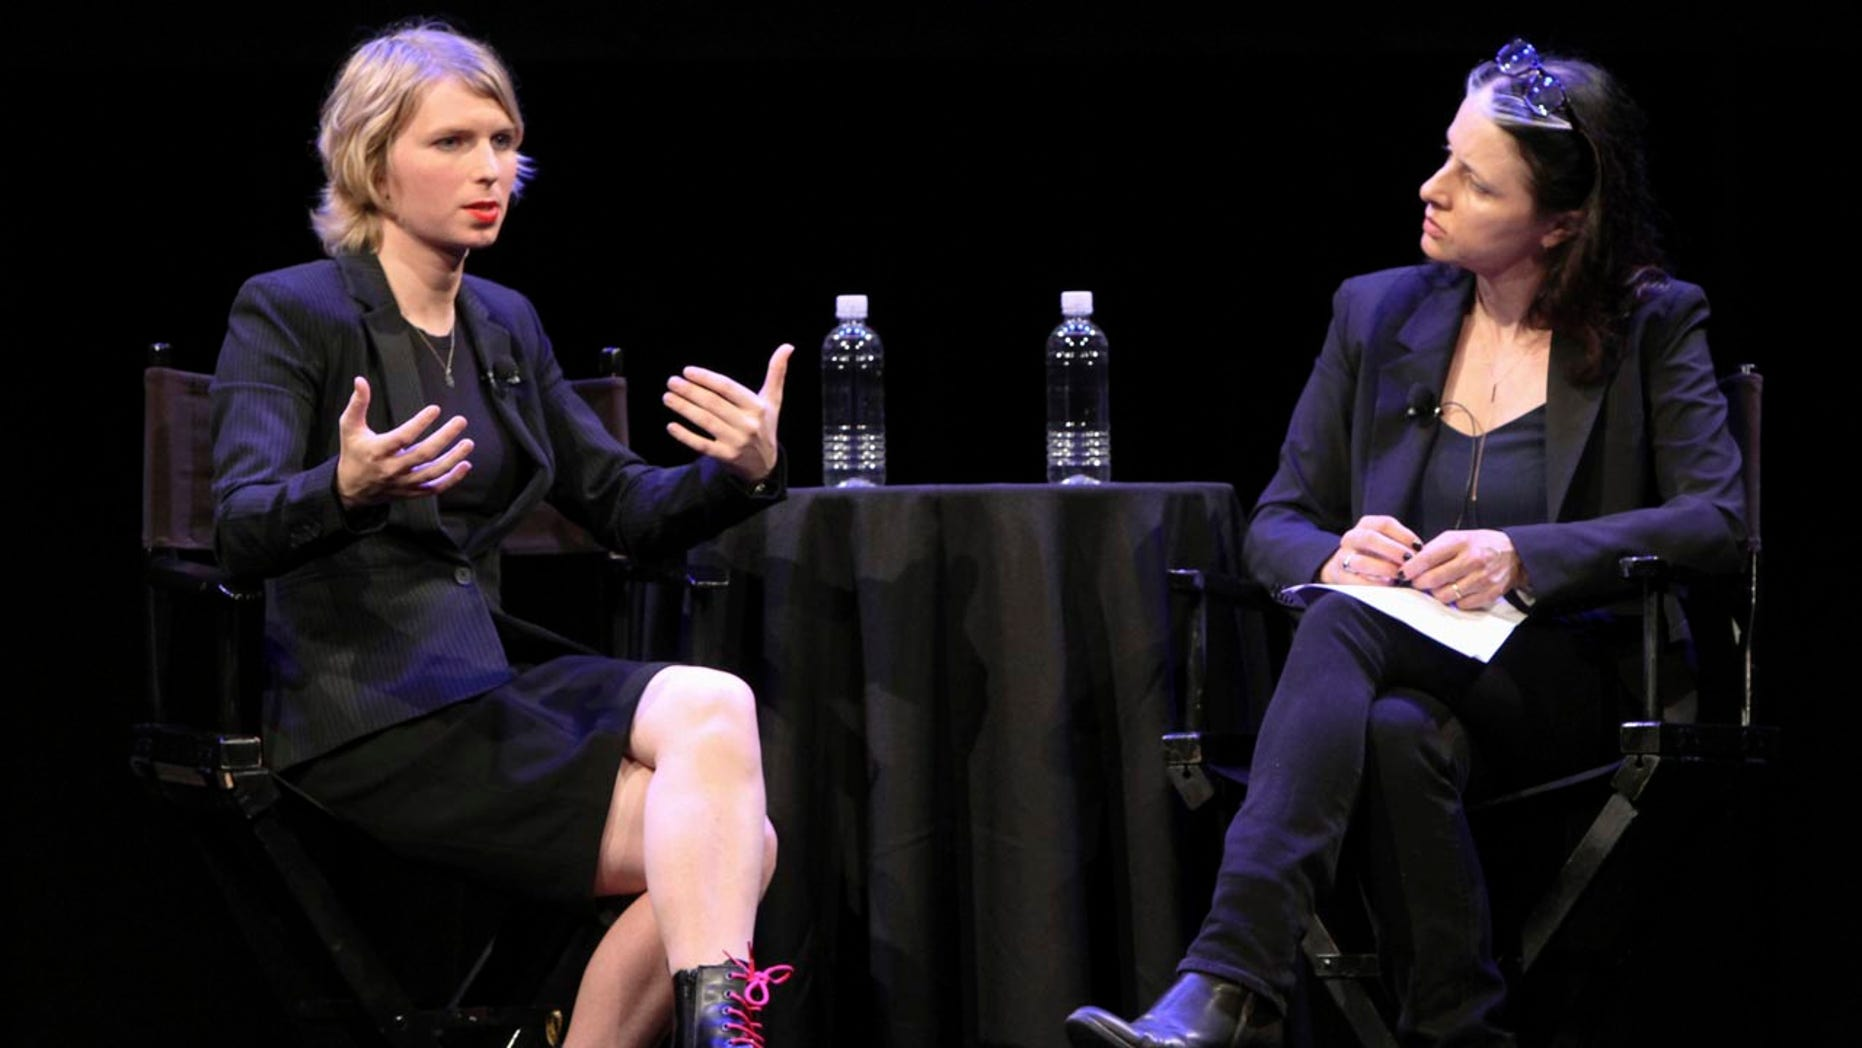 Oct 8: Chelsea Manning, left, speaks to New Yorker writer Larissa MacFarquhar during an appearance at the New Yorker Festival in New York